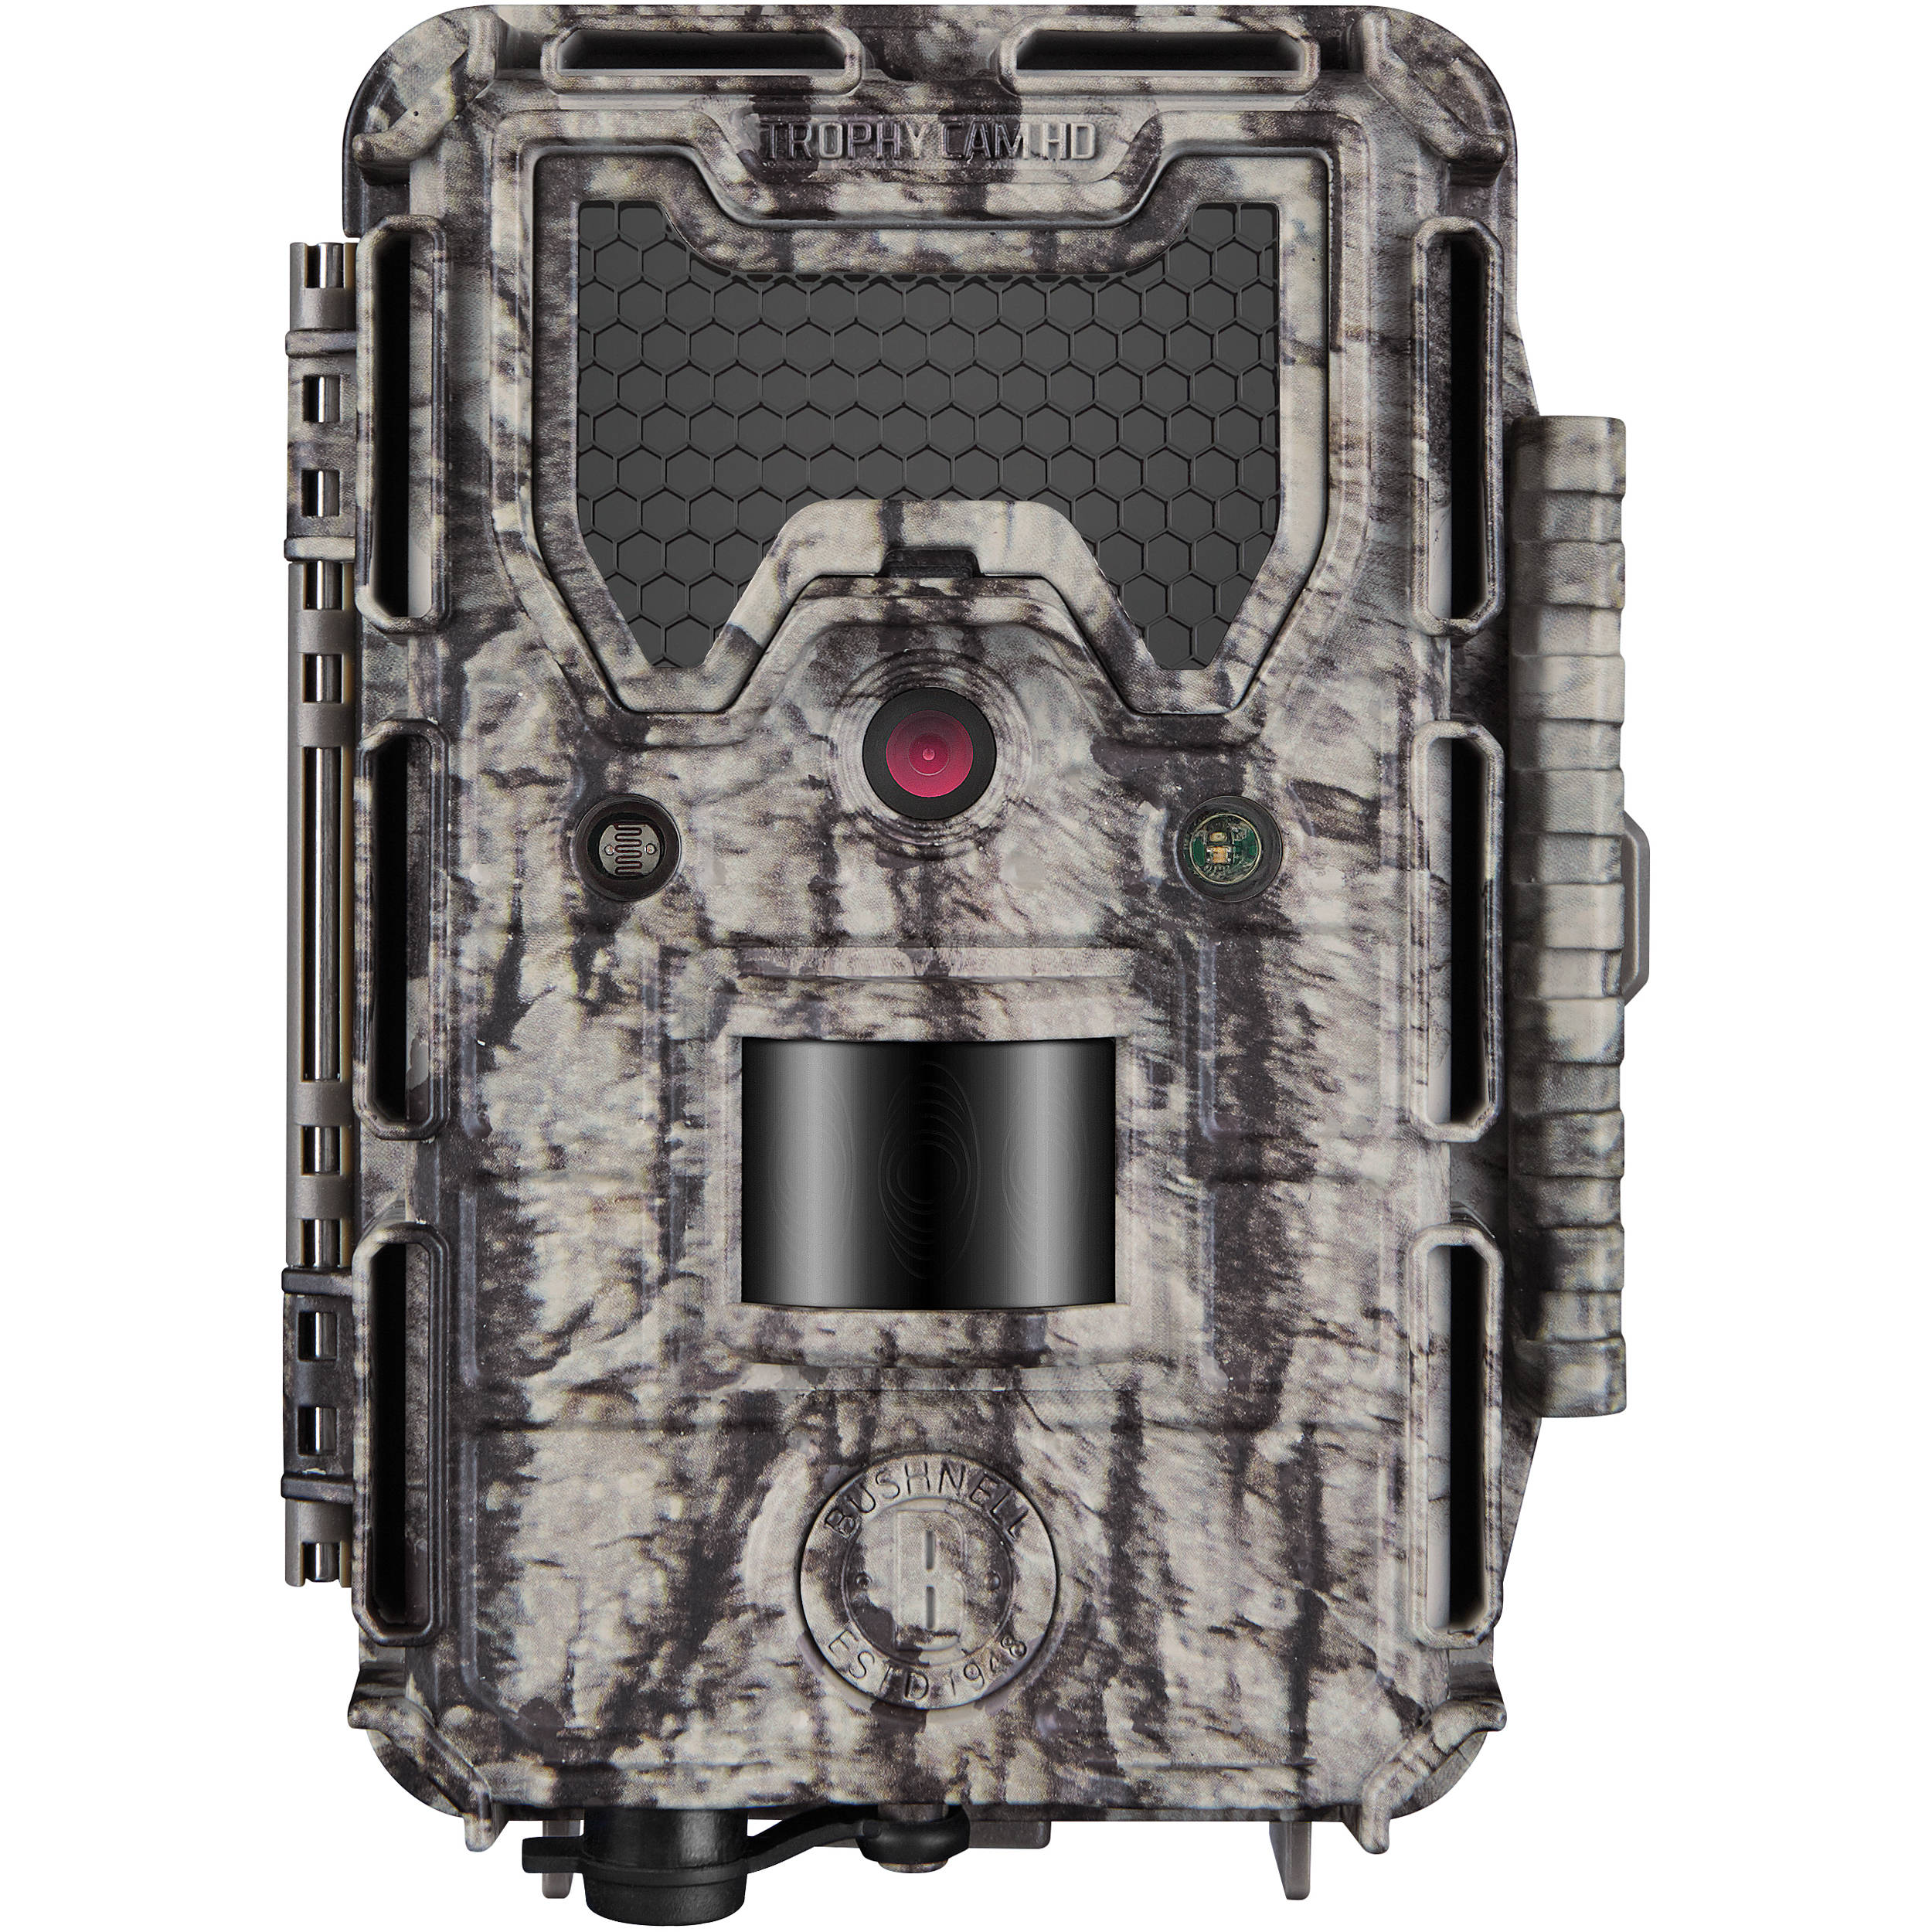 bushnell trophy cam hd aggressor no glow trail camera 119877c. Black Bedroom Furniture Sets. Home Design Ideas